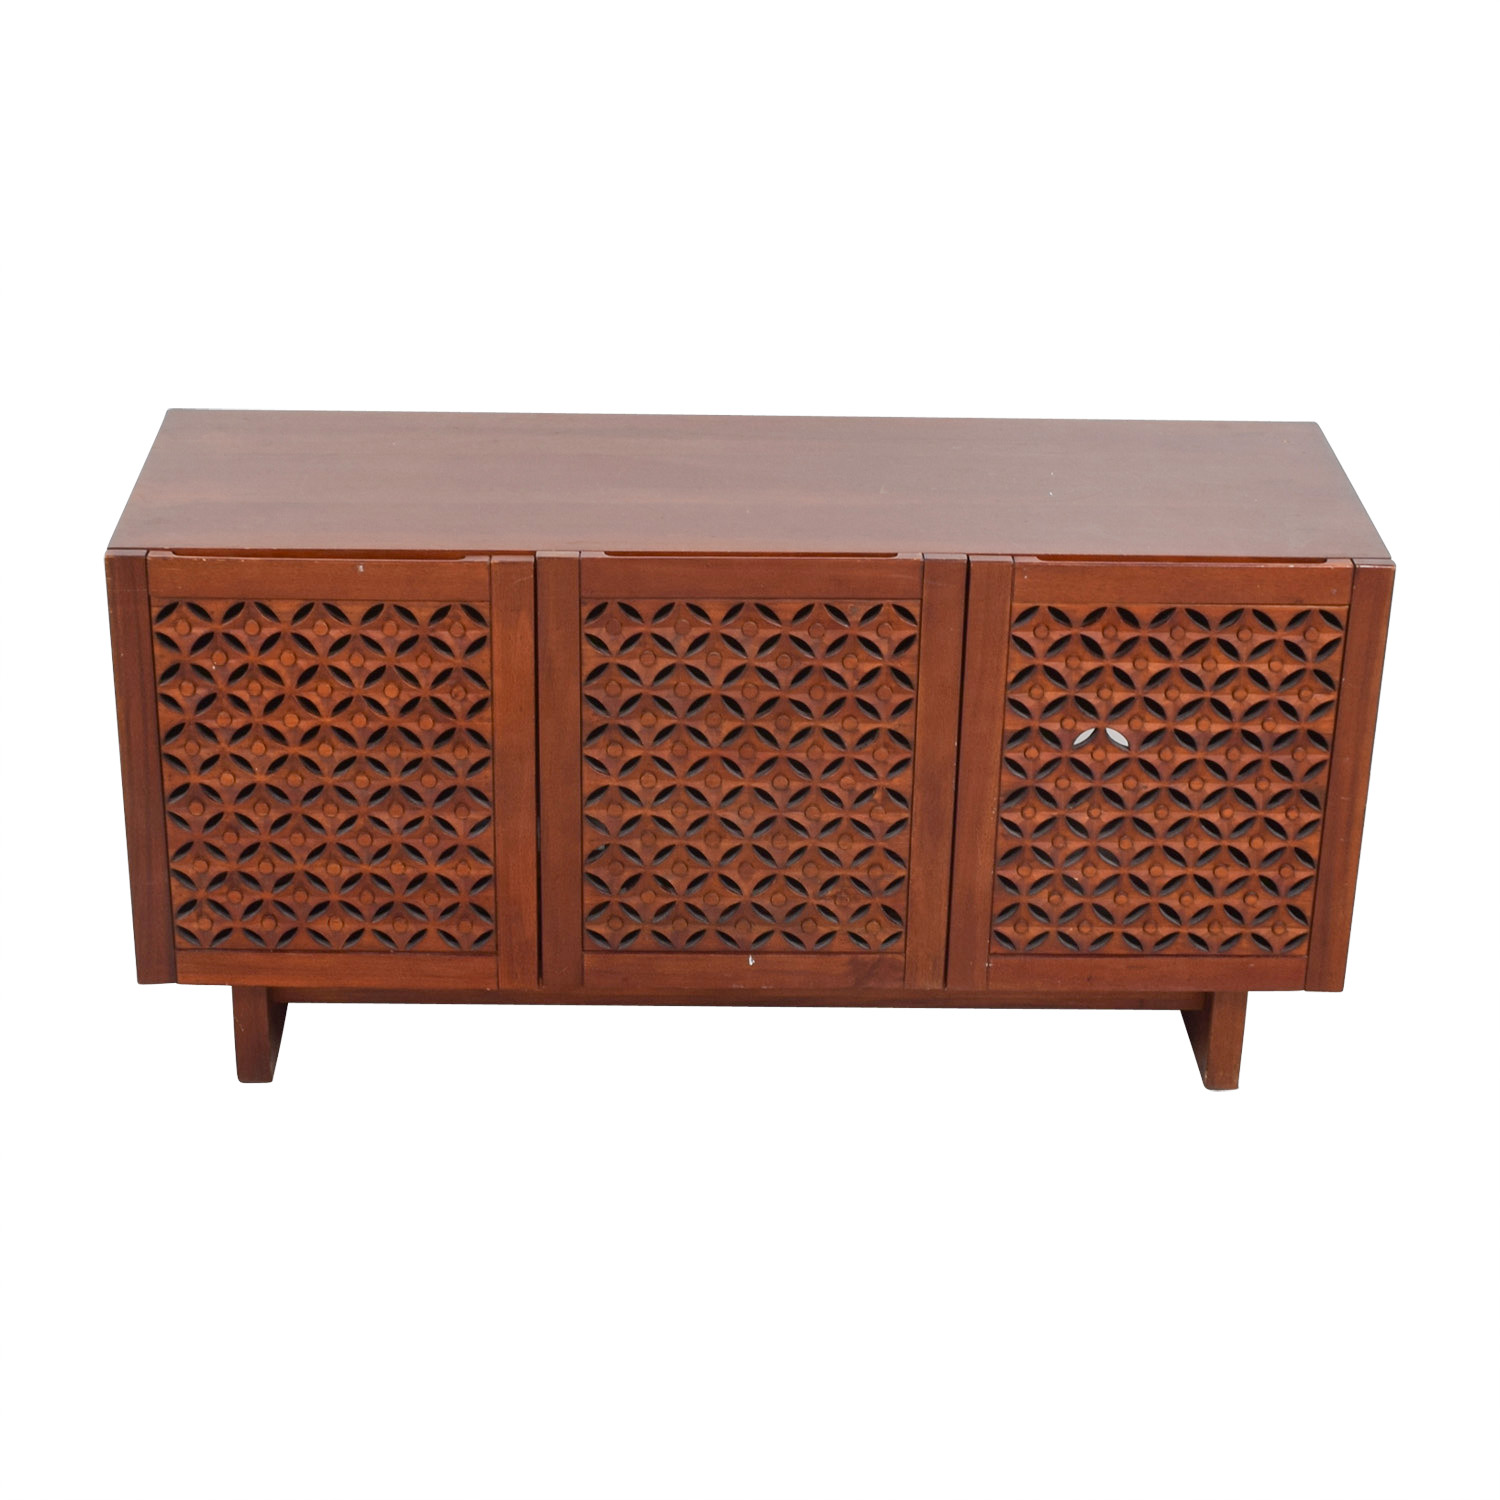 West Elm West Elm Carved Wood Media Console price